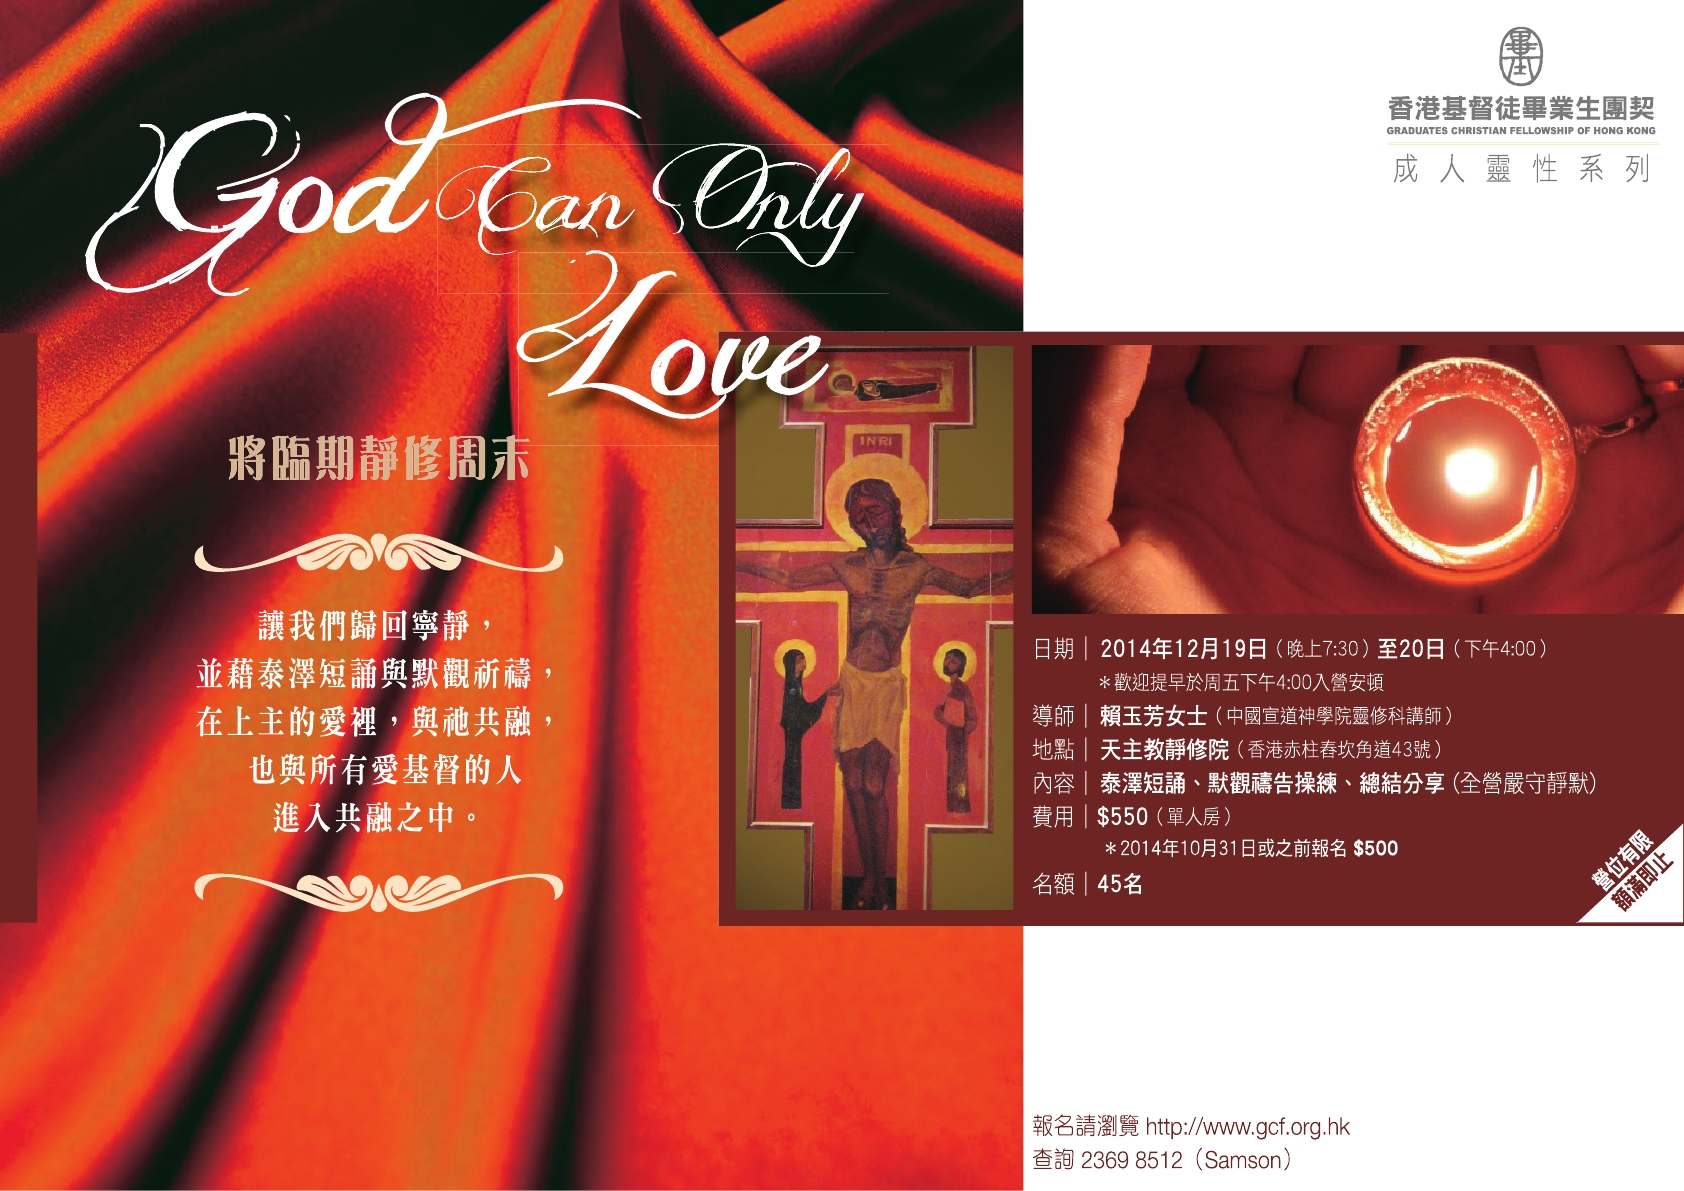 GCF god can only love camp 2014 poster